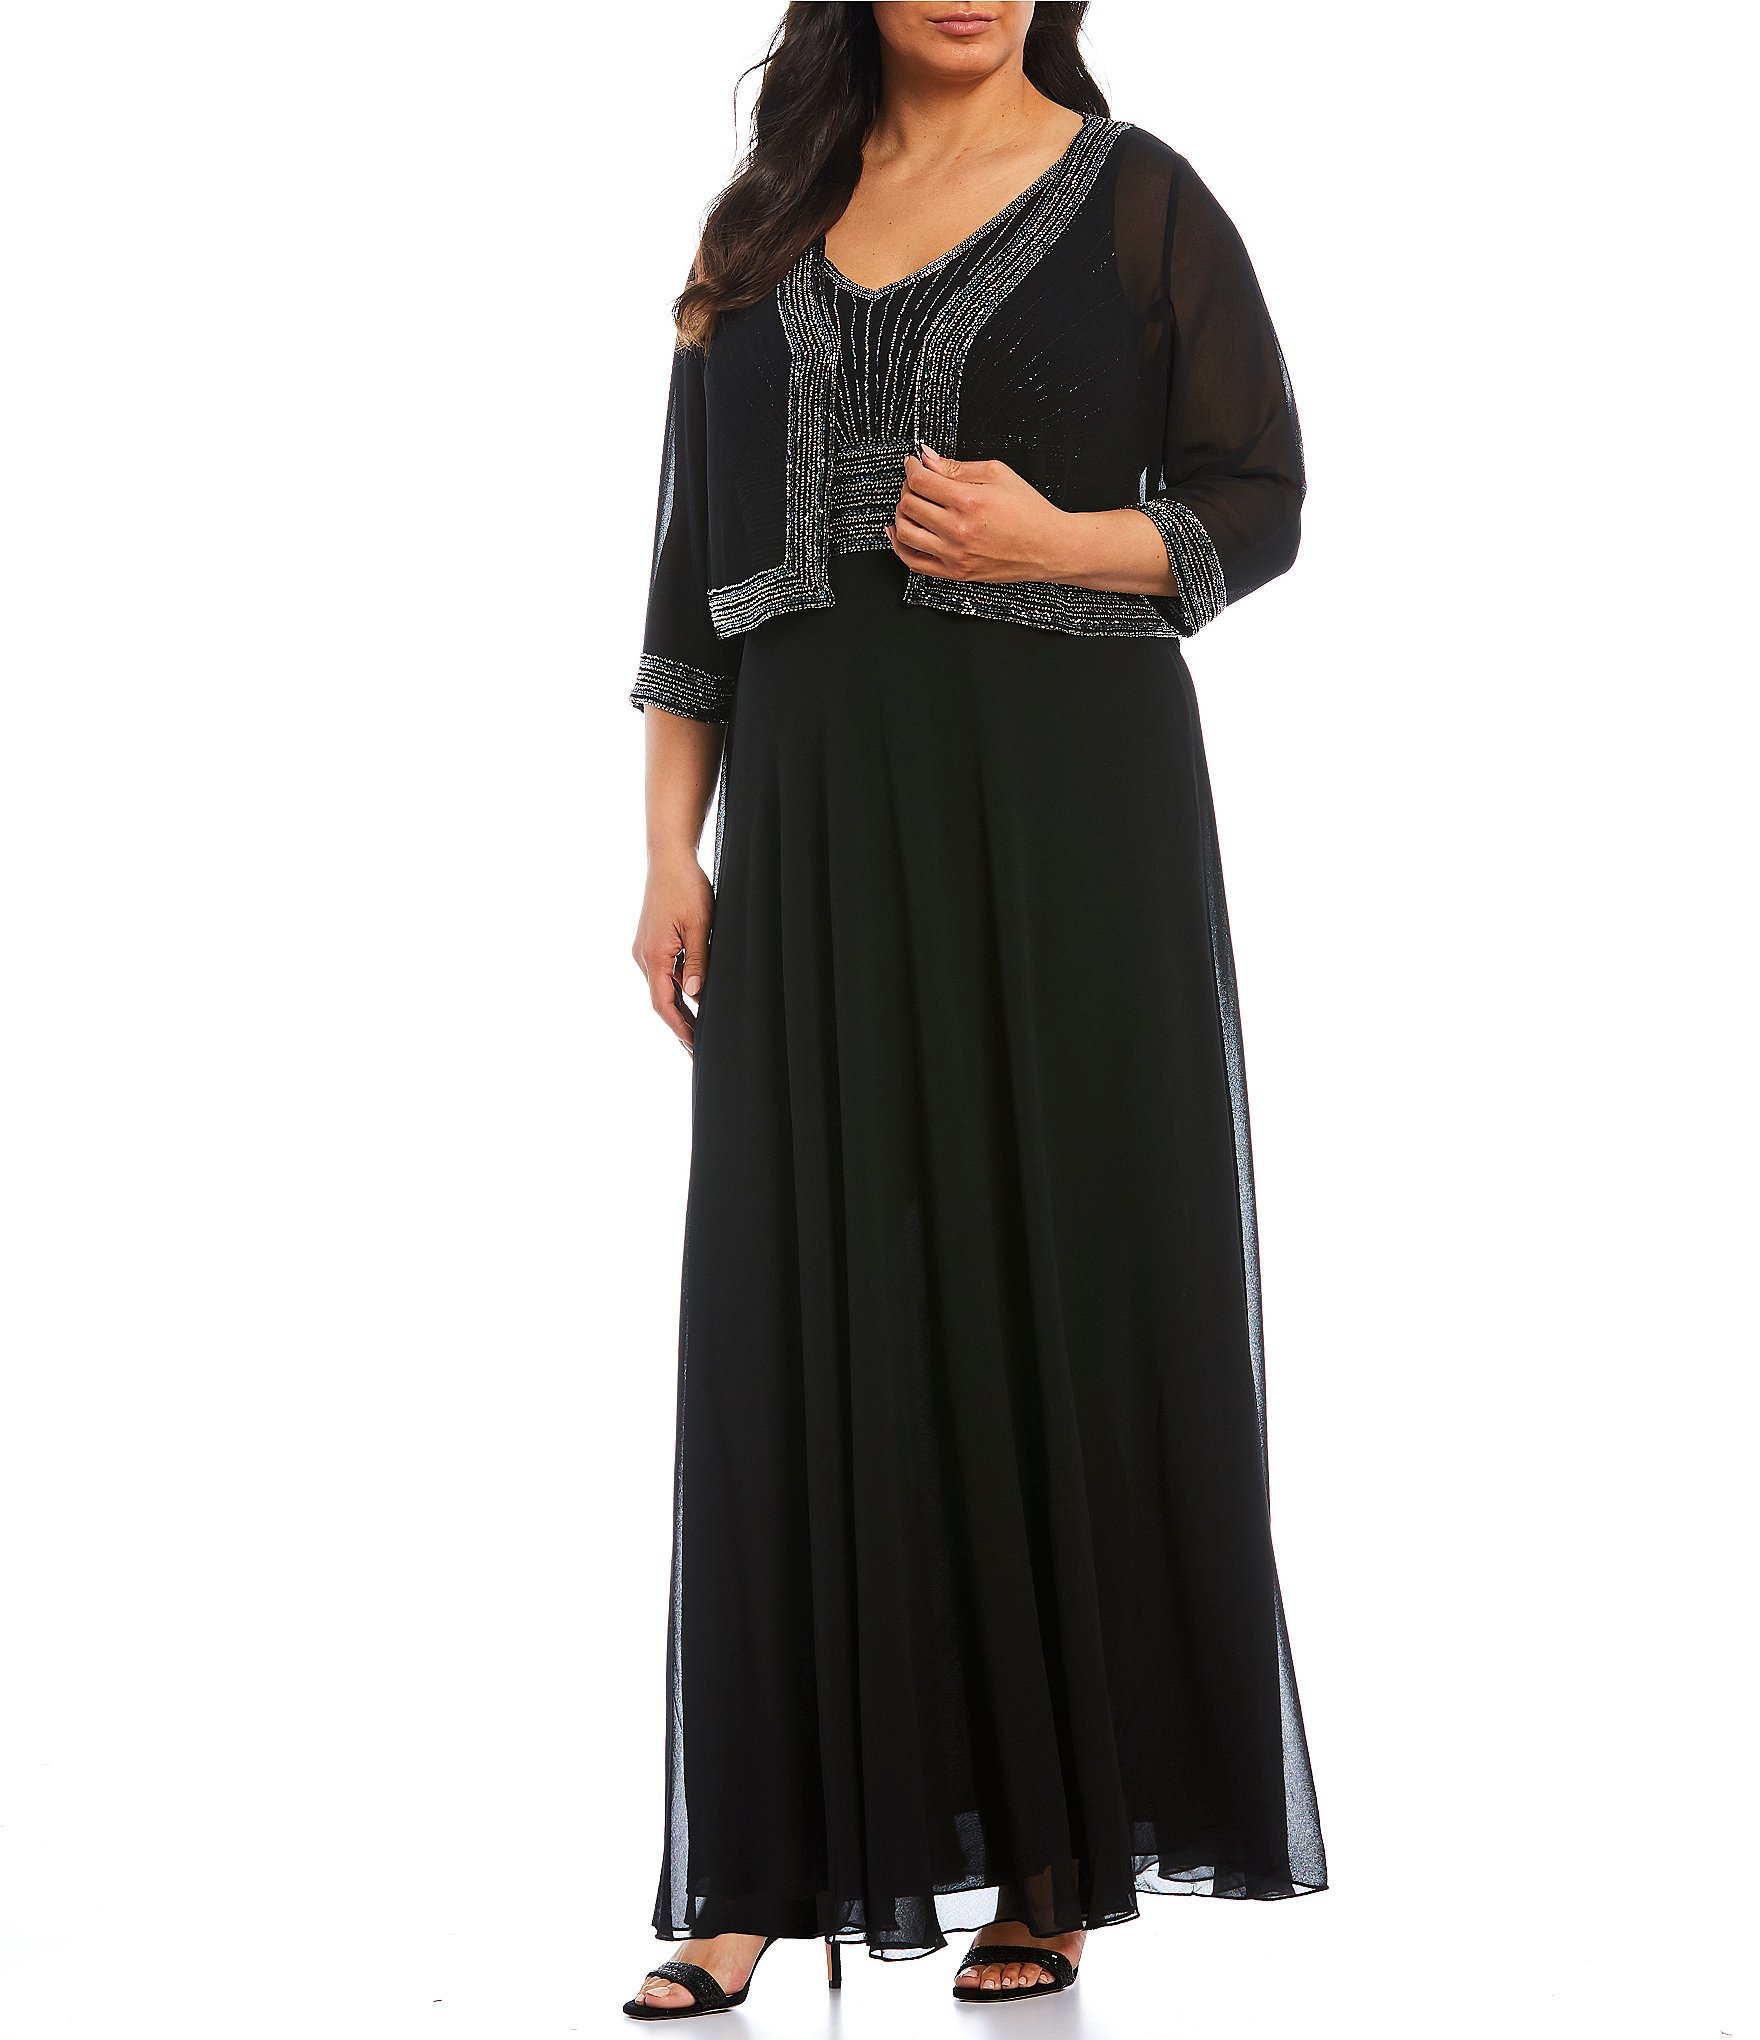 Jkara Plus Size Beaded Bodice Chiffon Jacket Dress